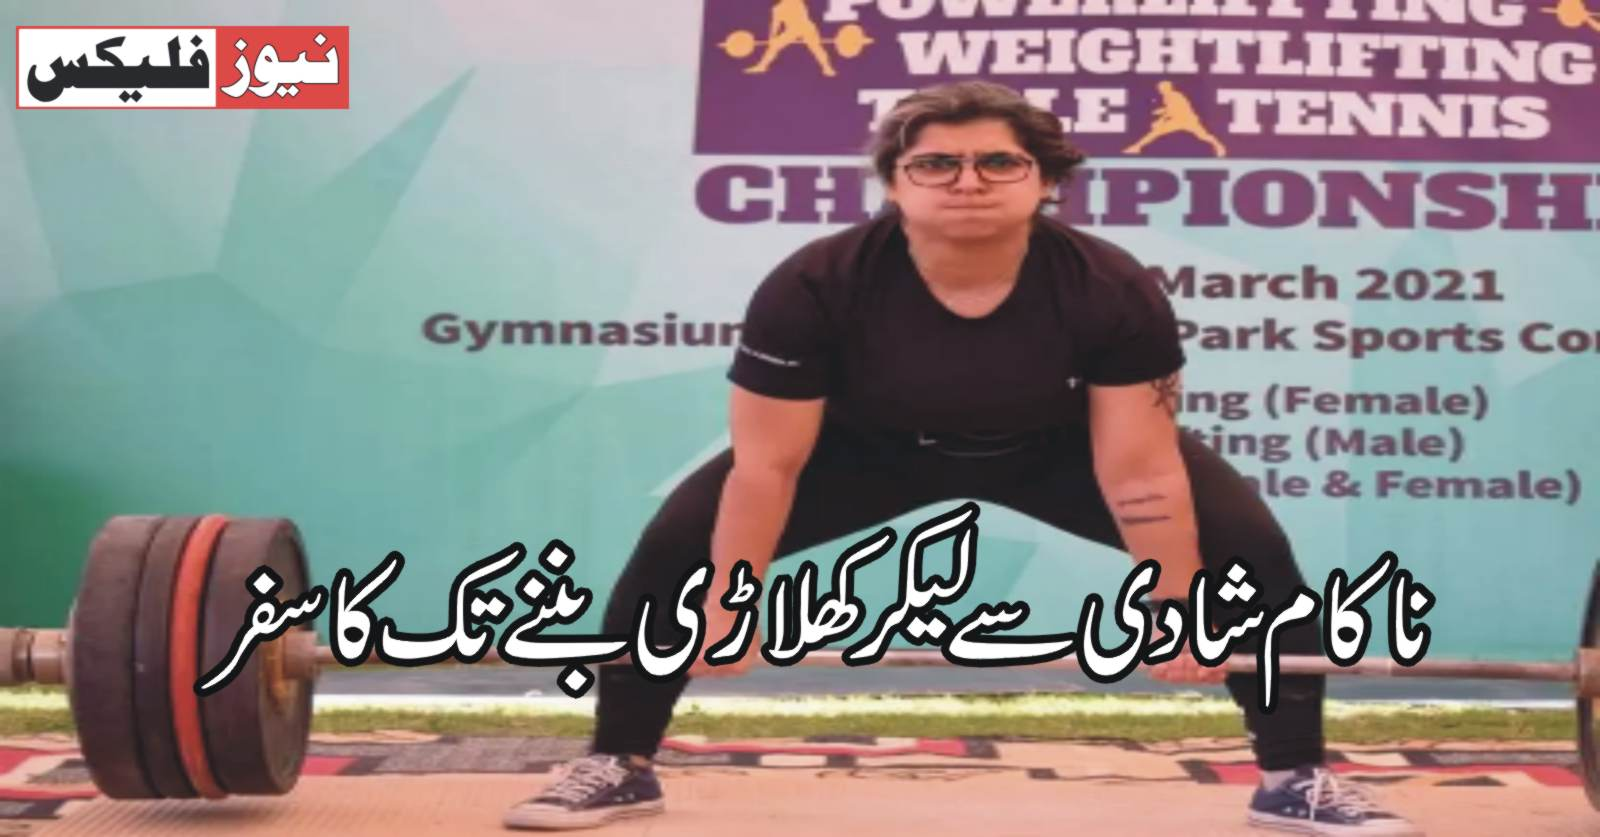 Meet Rameesha – Her Journey From A 'Failed Marriage' To Becoming An 'Athlete' Will Inspire You!